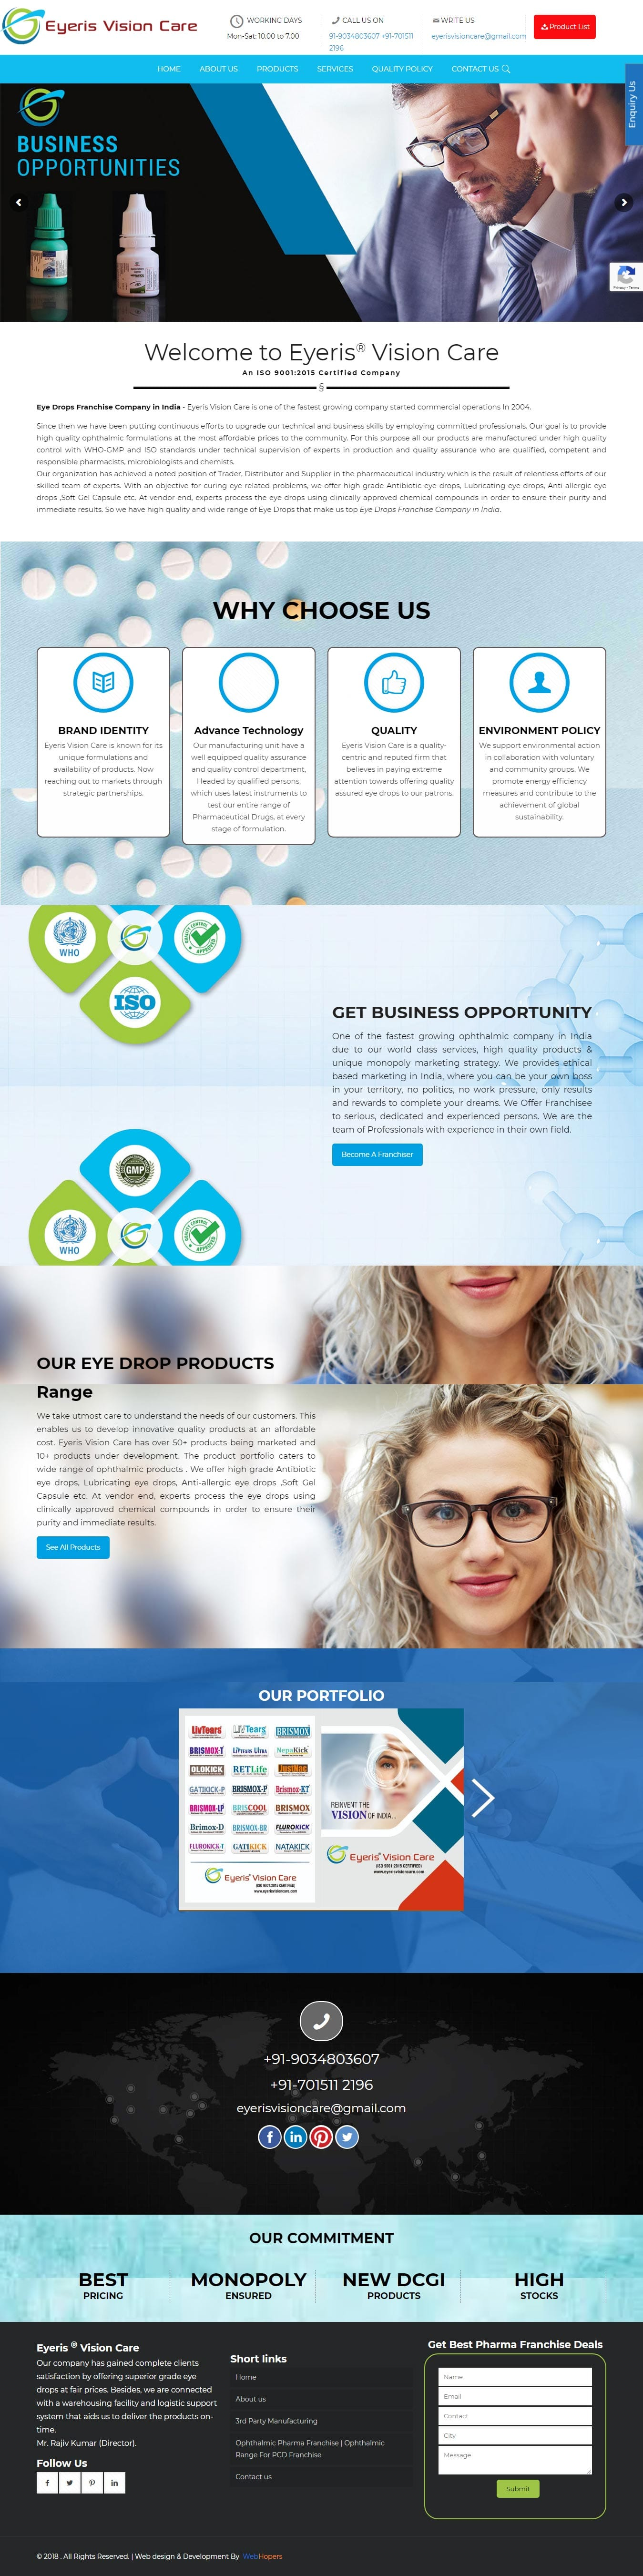 Web development Portfolio - WebHopers